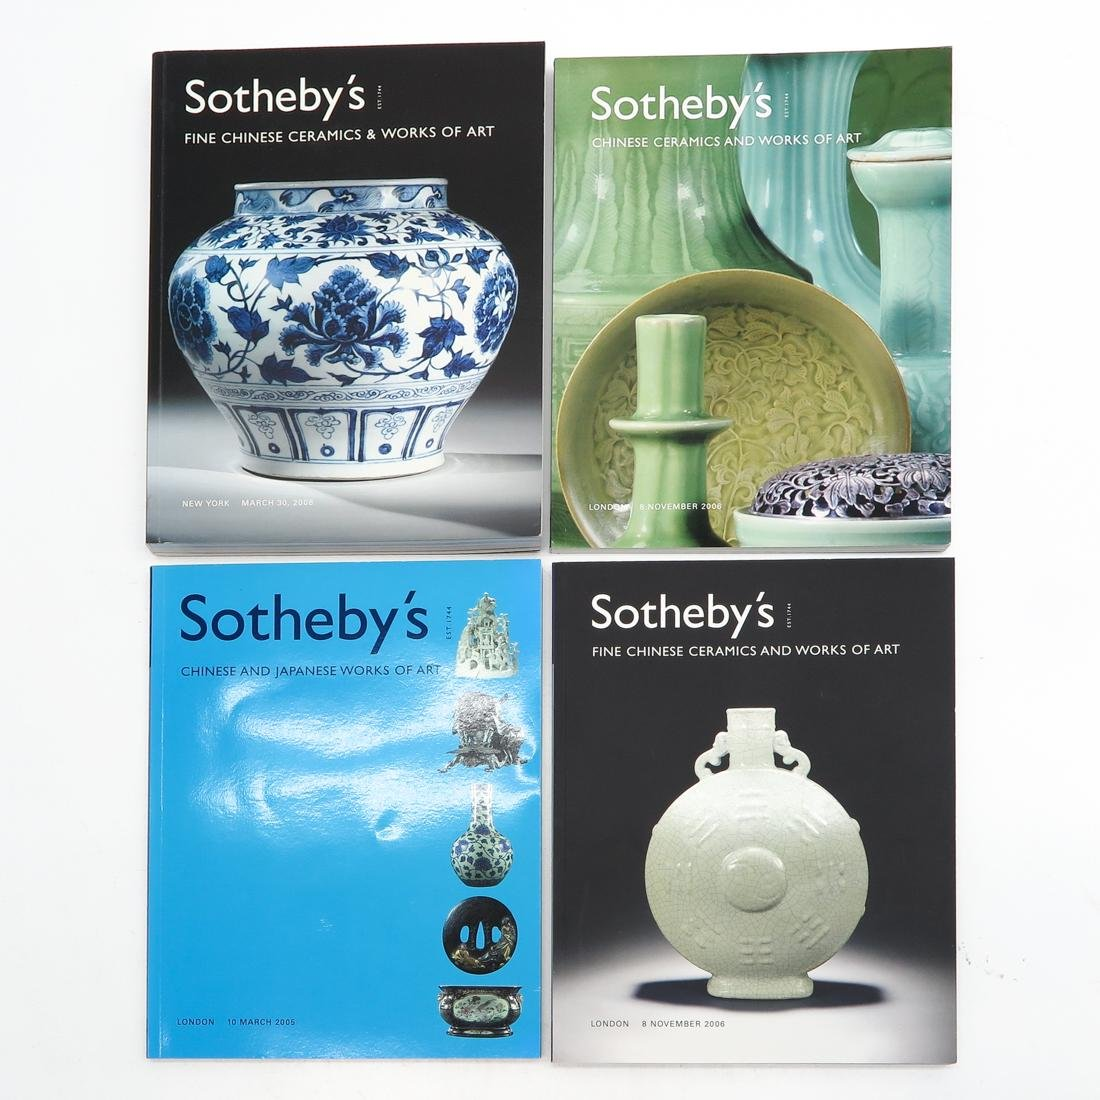 Lot of Sotheby's Asian Subject Auction Catalogs - 3